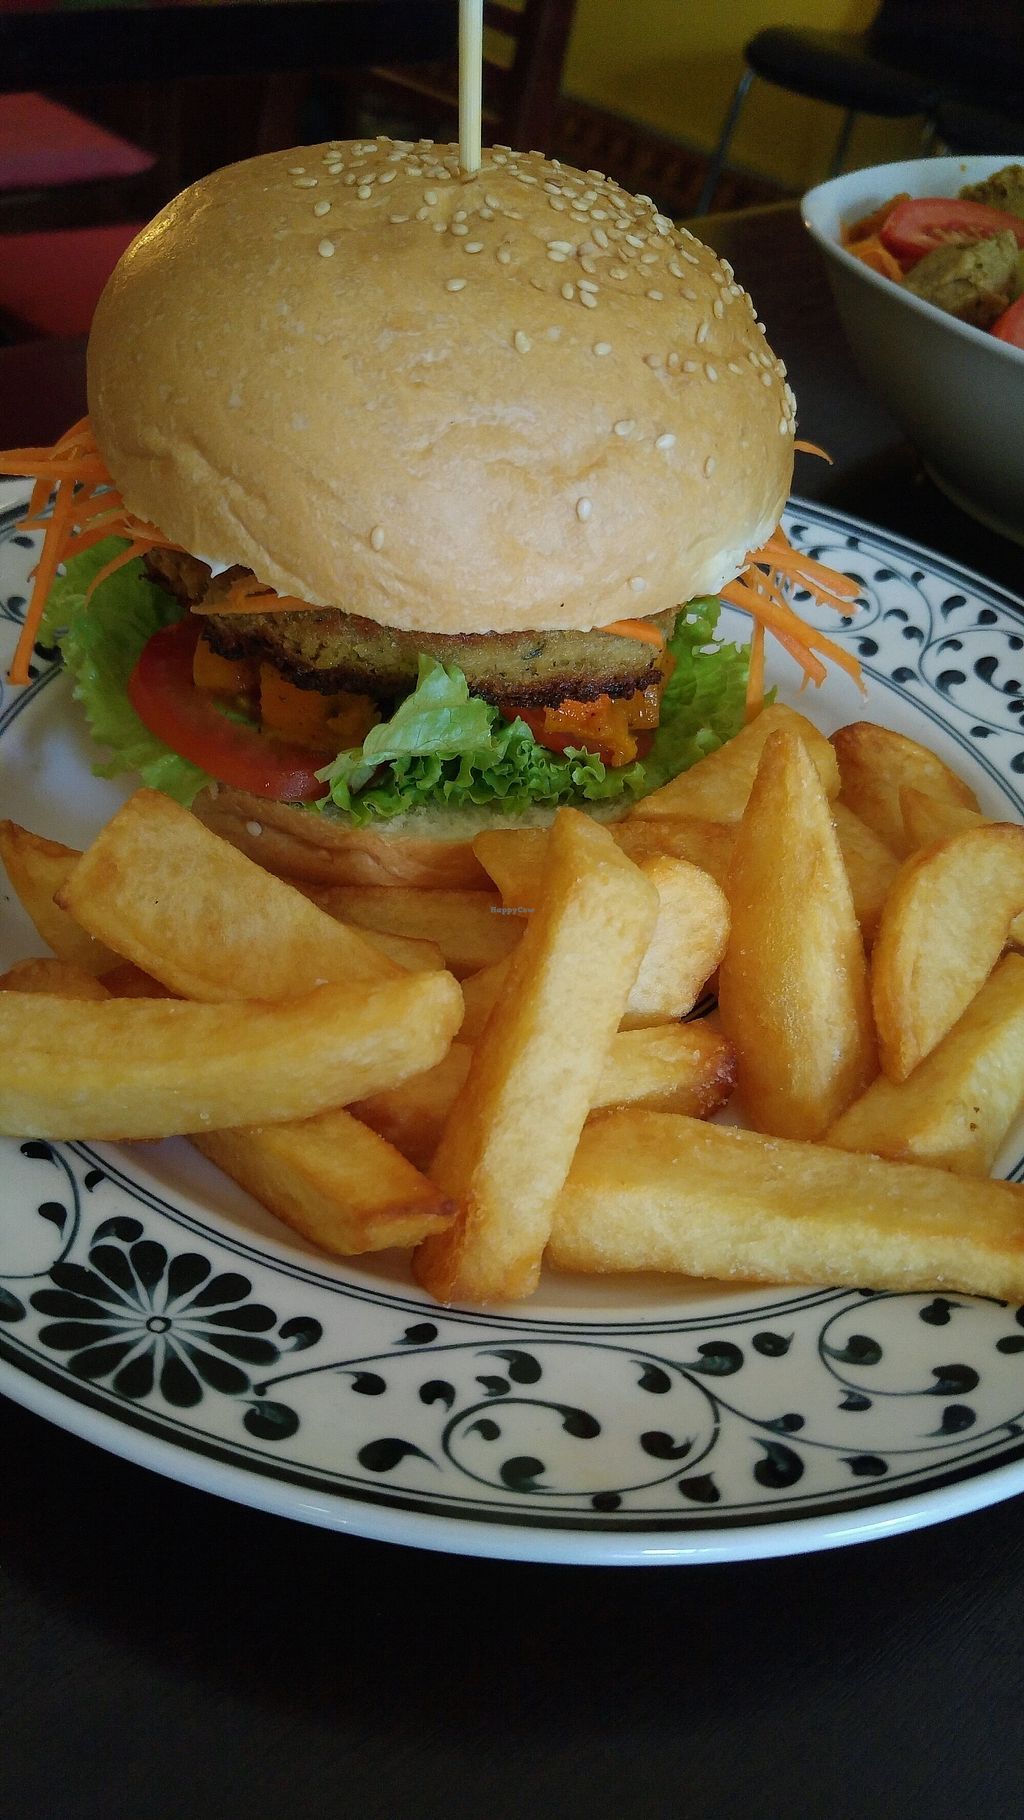 """Photo of Chookie's  by <a href=""""/members/profile/daveVN"""">daveVN</a> <br/>falafel burger <br/> September 8, 2017  - <a href='/contact/abuse/image/61478/302216'>Report</a>"""